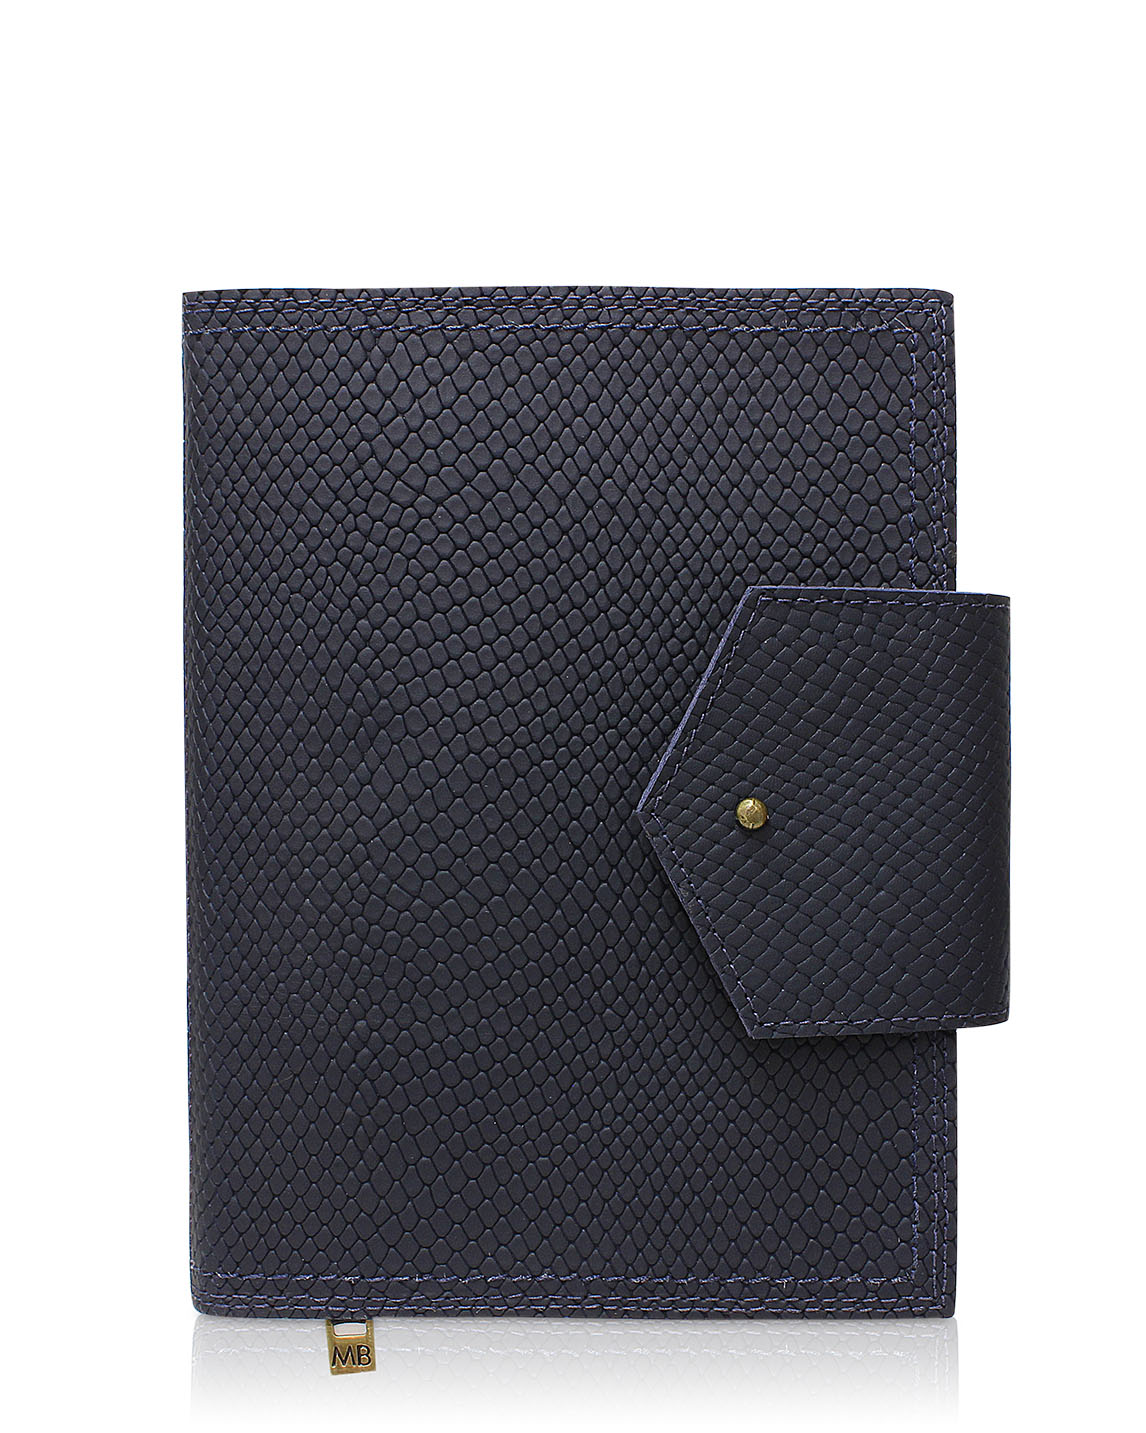 Agenda AG-0128 Color Azul